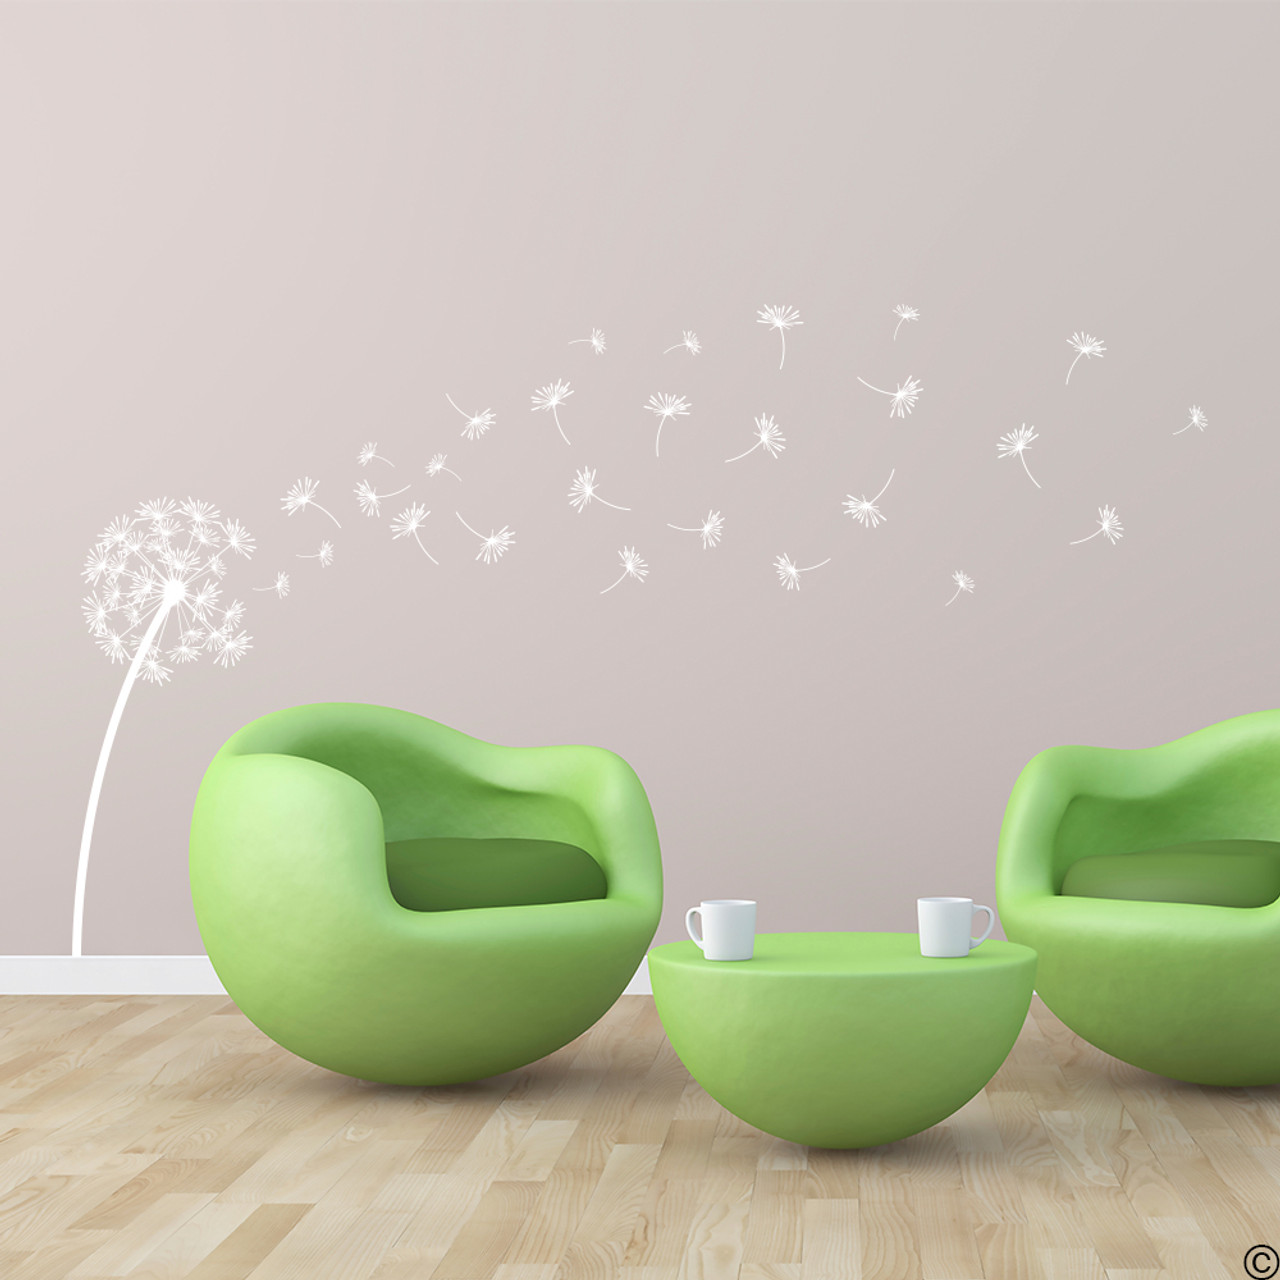 The Glinda dandelion vinyl wall decal in white